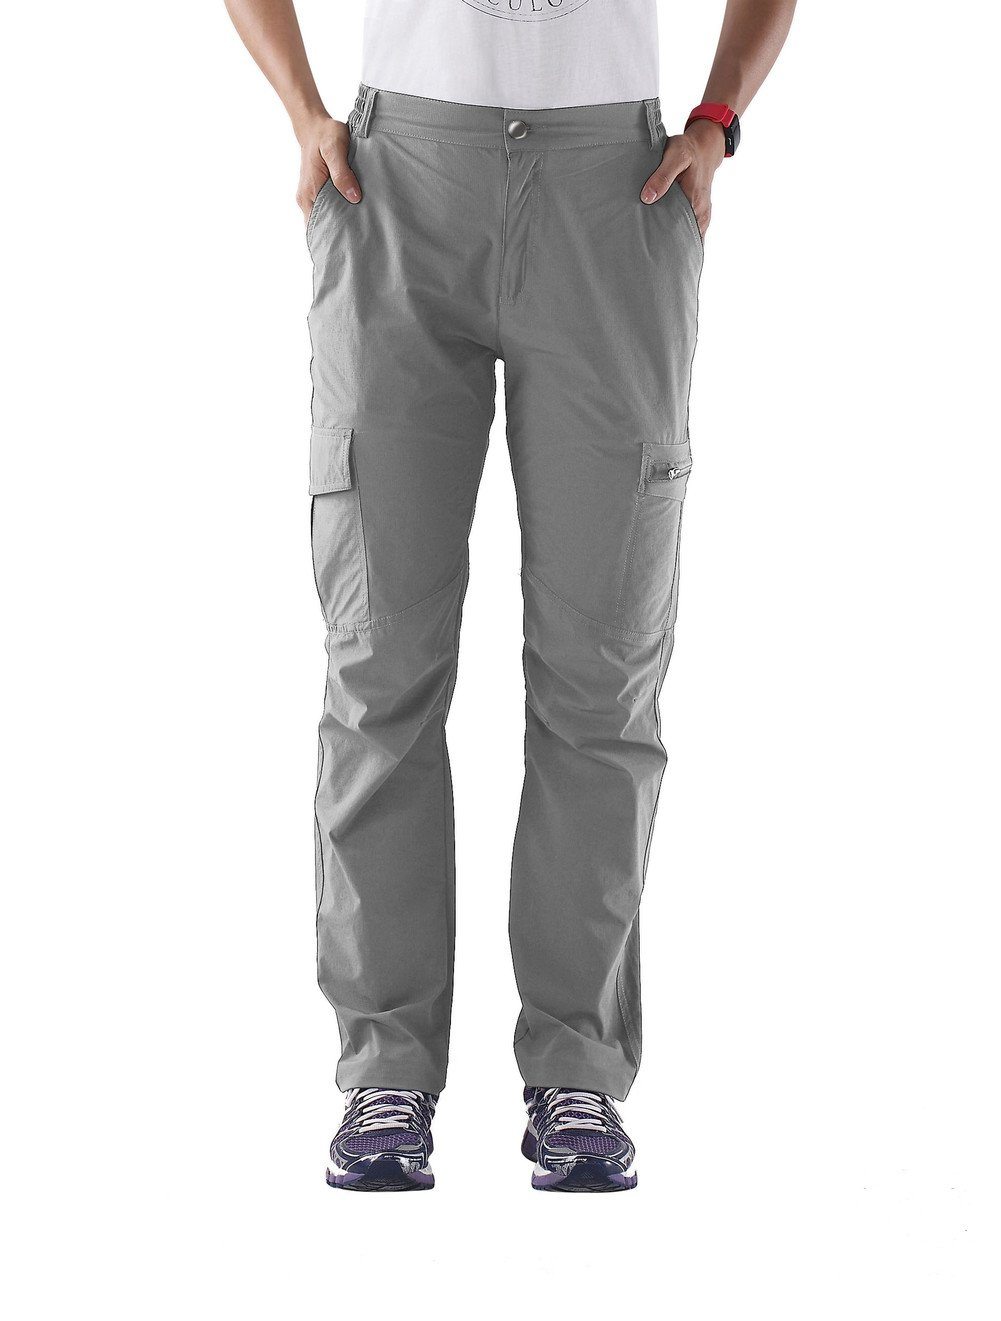 Nonwe Women's Outdoor Quick Dry Cargo Hiking Pants Light Gray L/32 Inseam by Nonwe